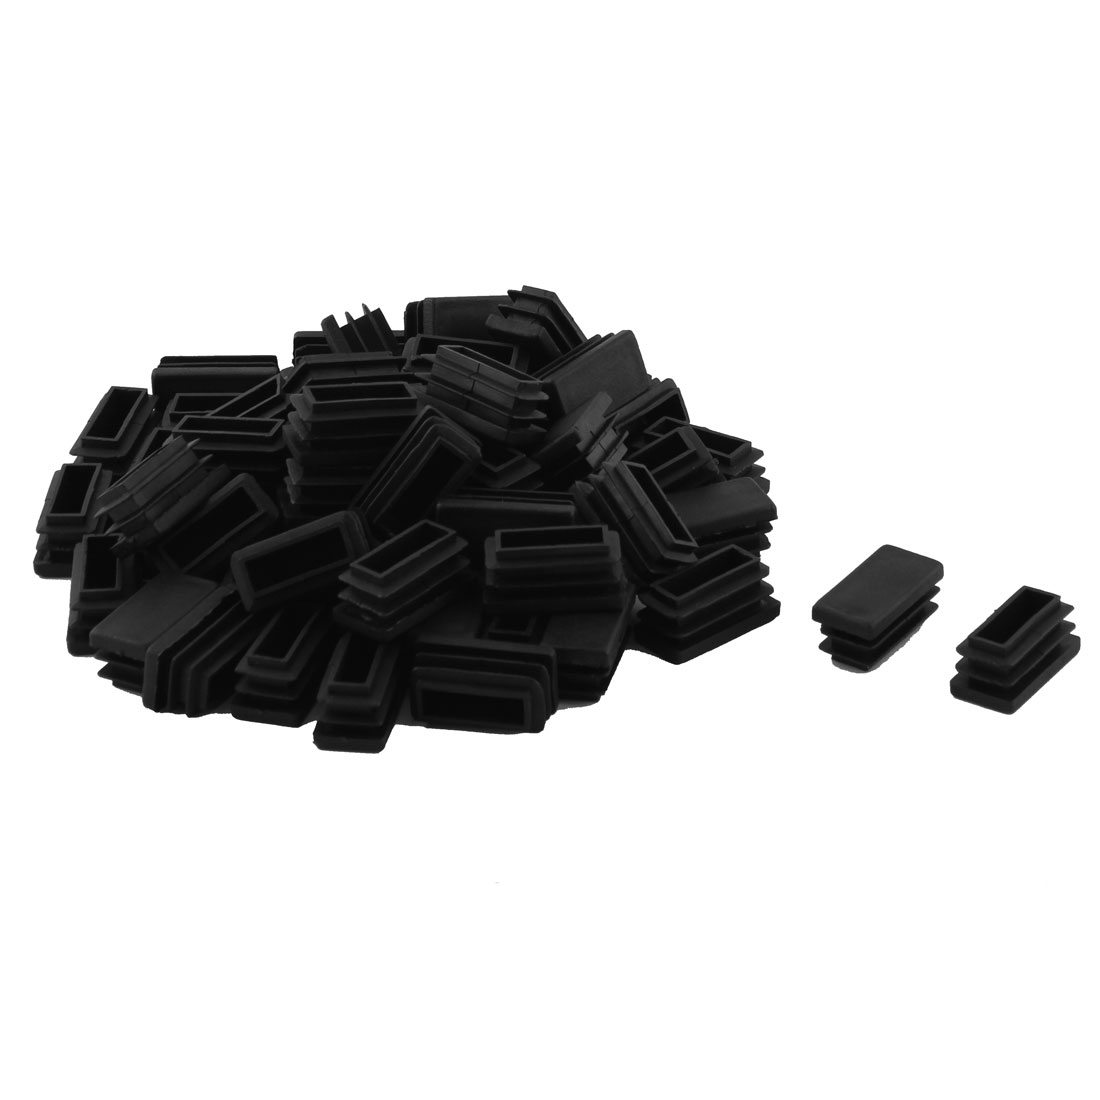 Plastic Rectangle Design Tube Insert End Blanking Cover Cap Black 15 x 30mm 60pcs